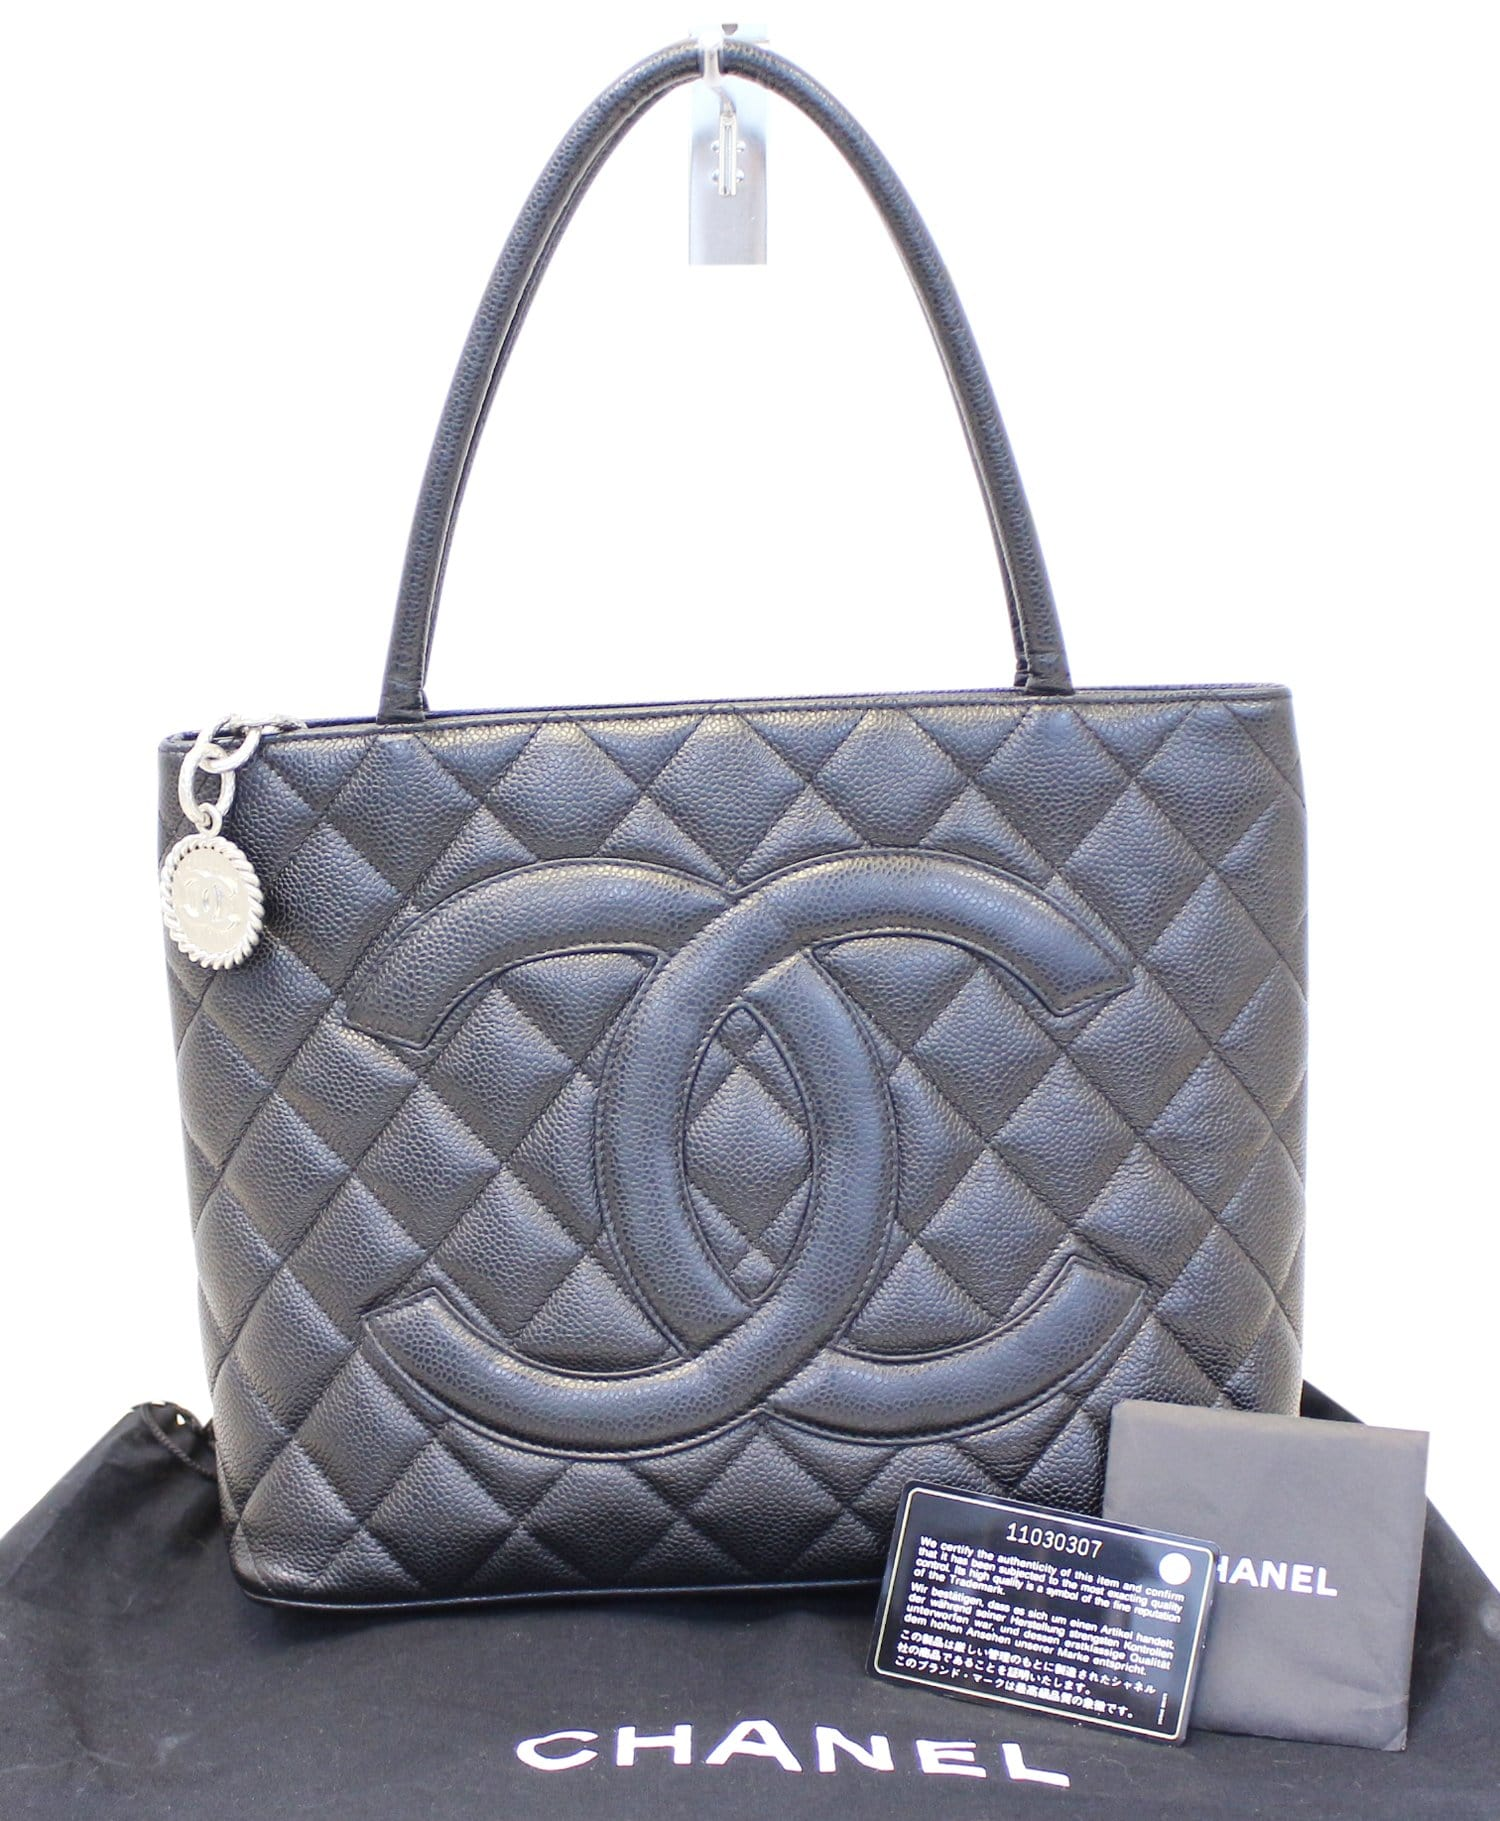 a36c168c58e4 CHANEL Black Quilted Caviar Leather Medallion Tote Bag